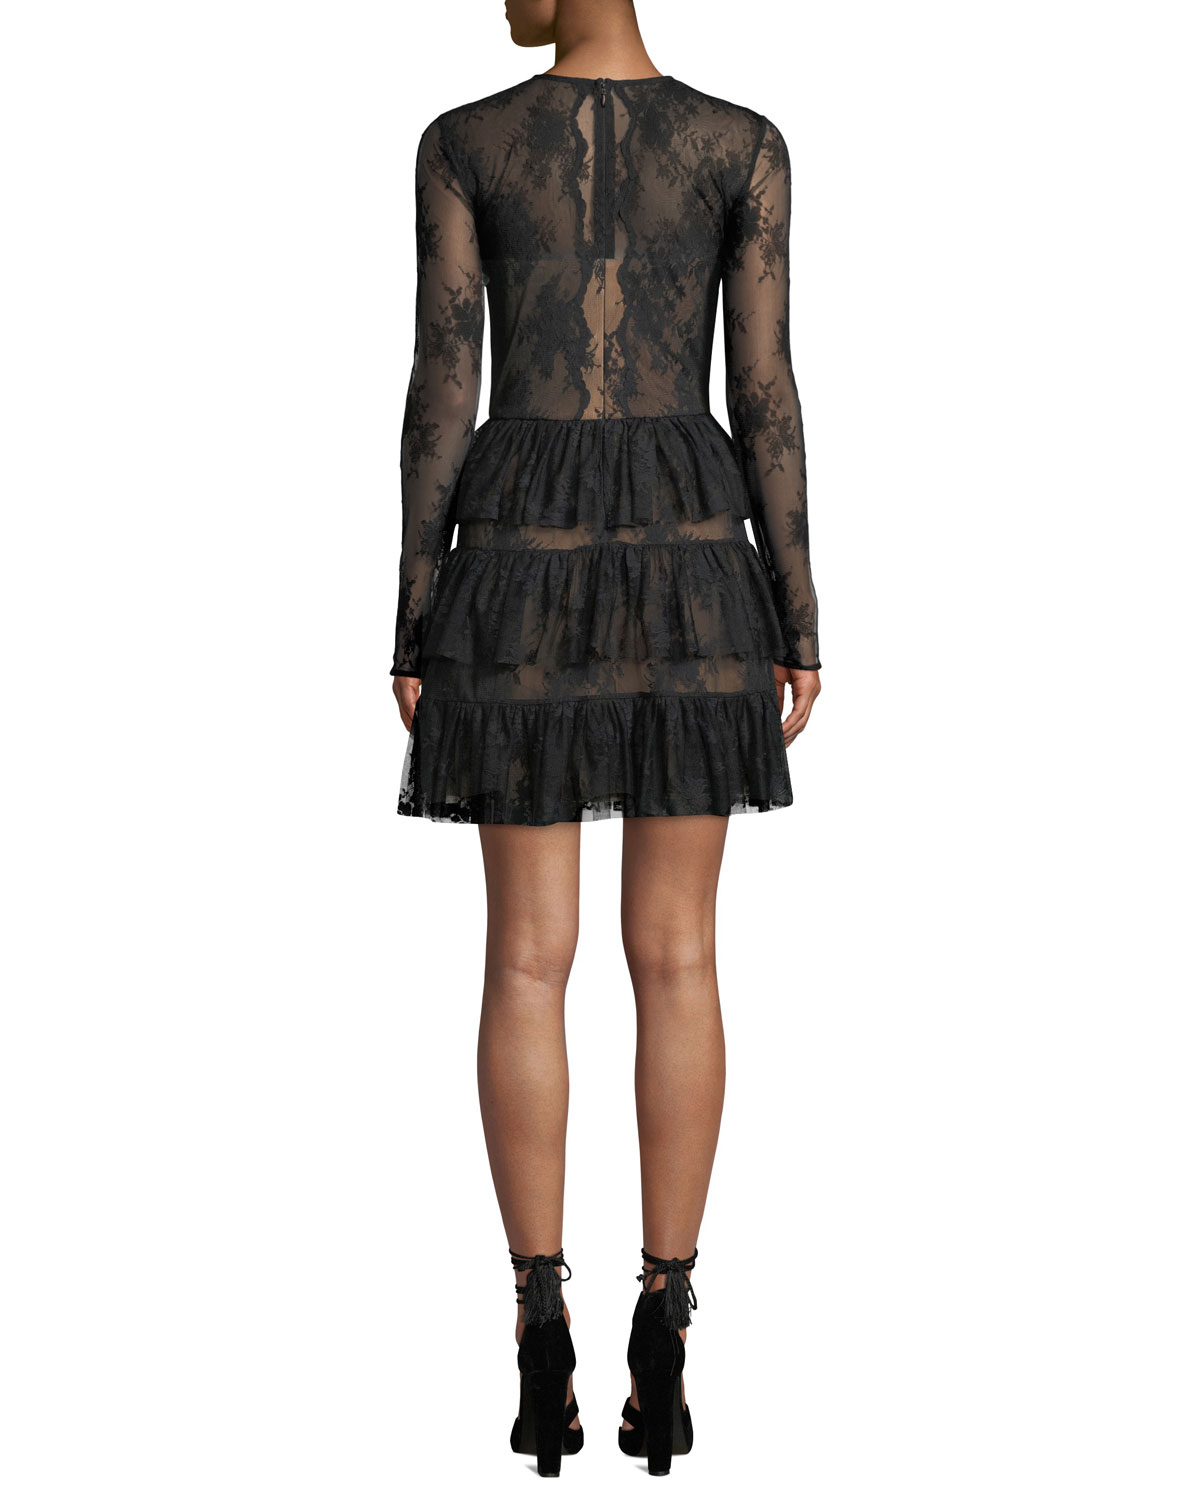 Riviera Lace Long Sleeve Cocktail Dress